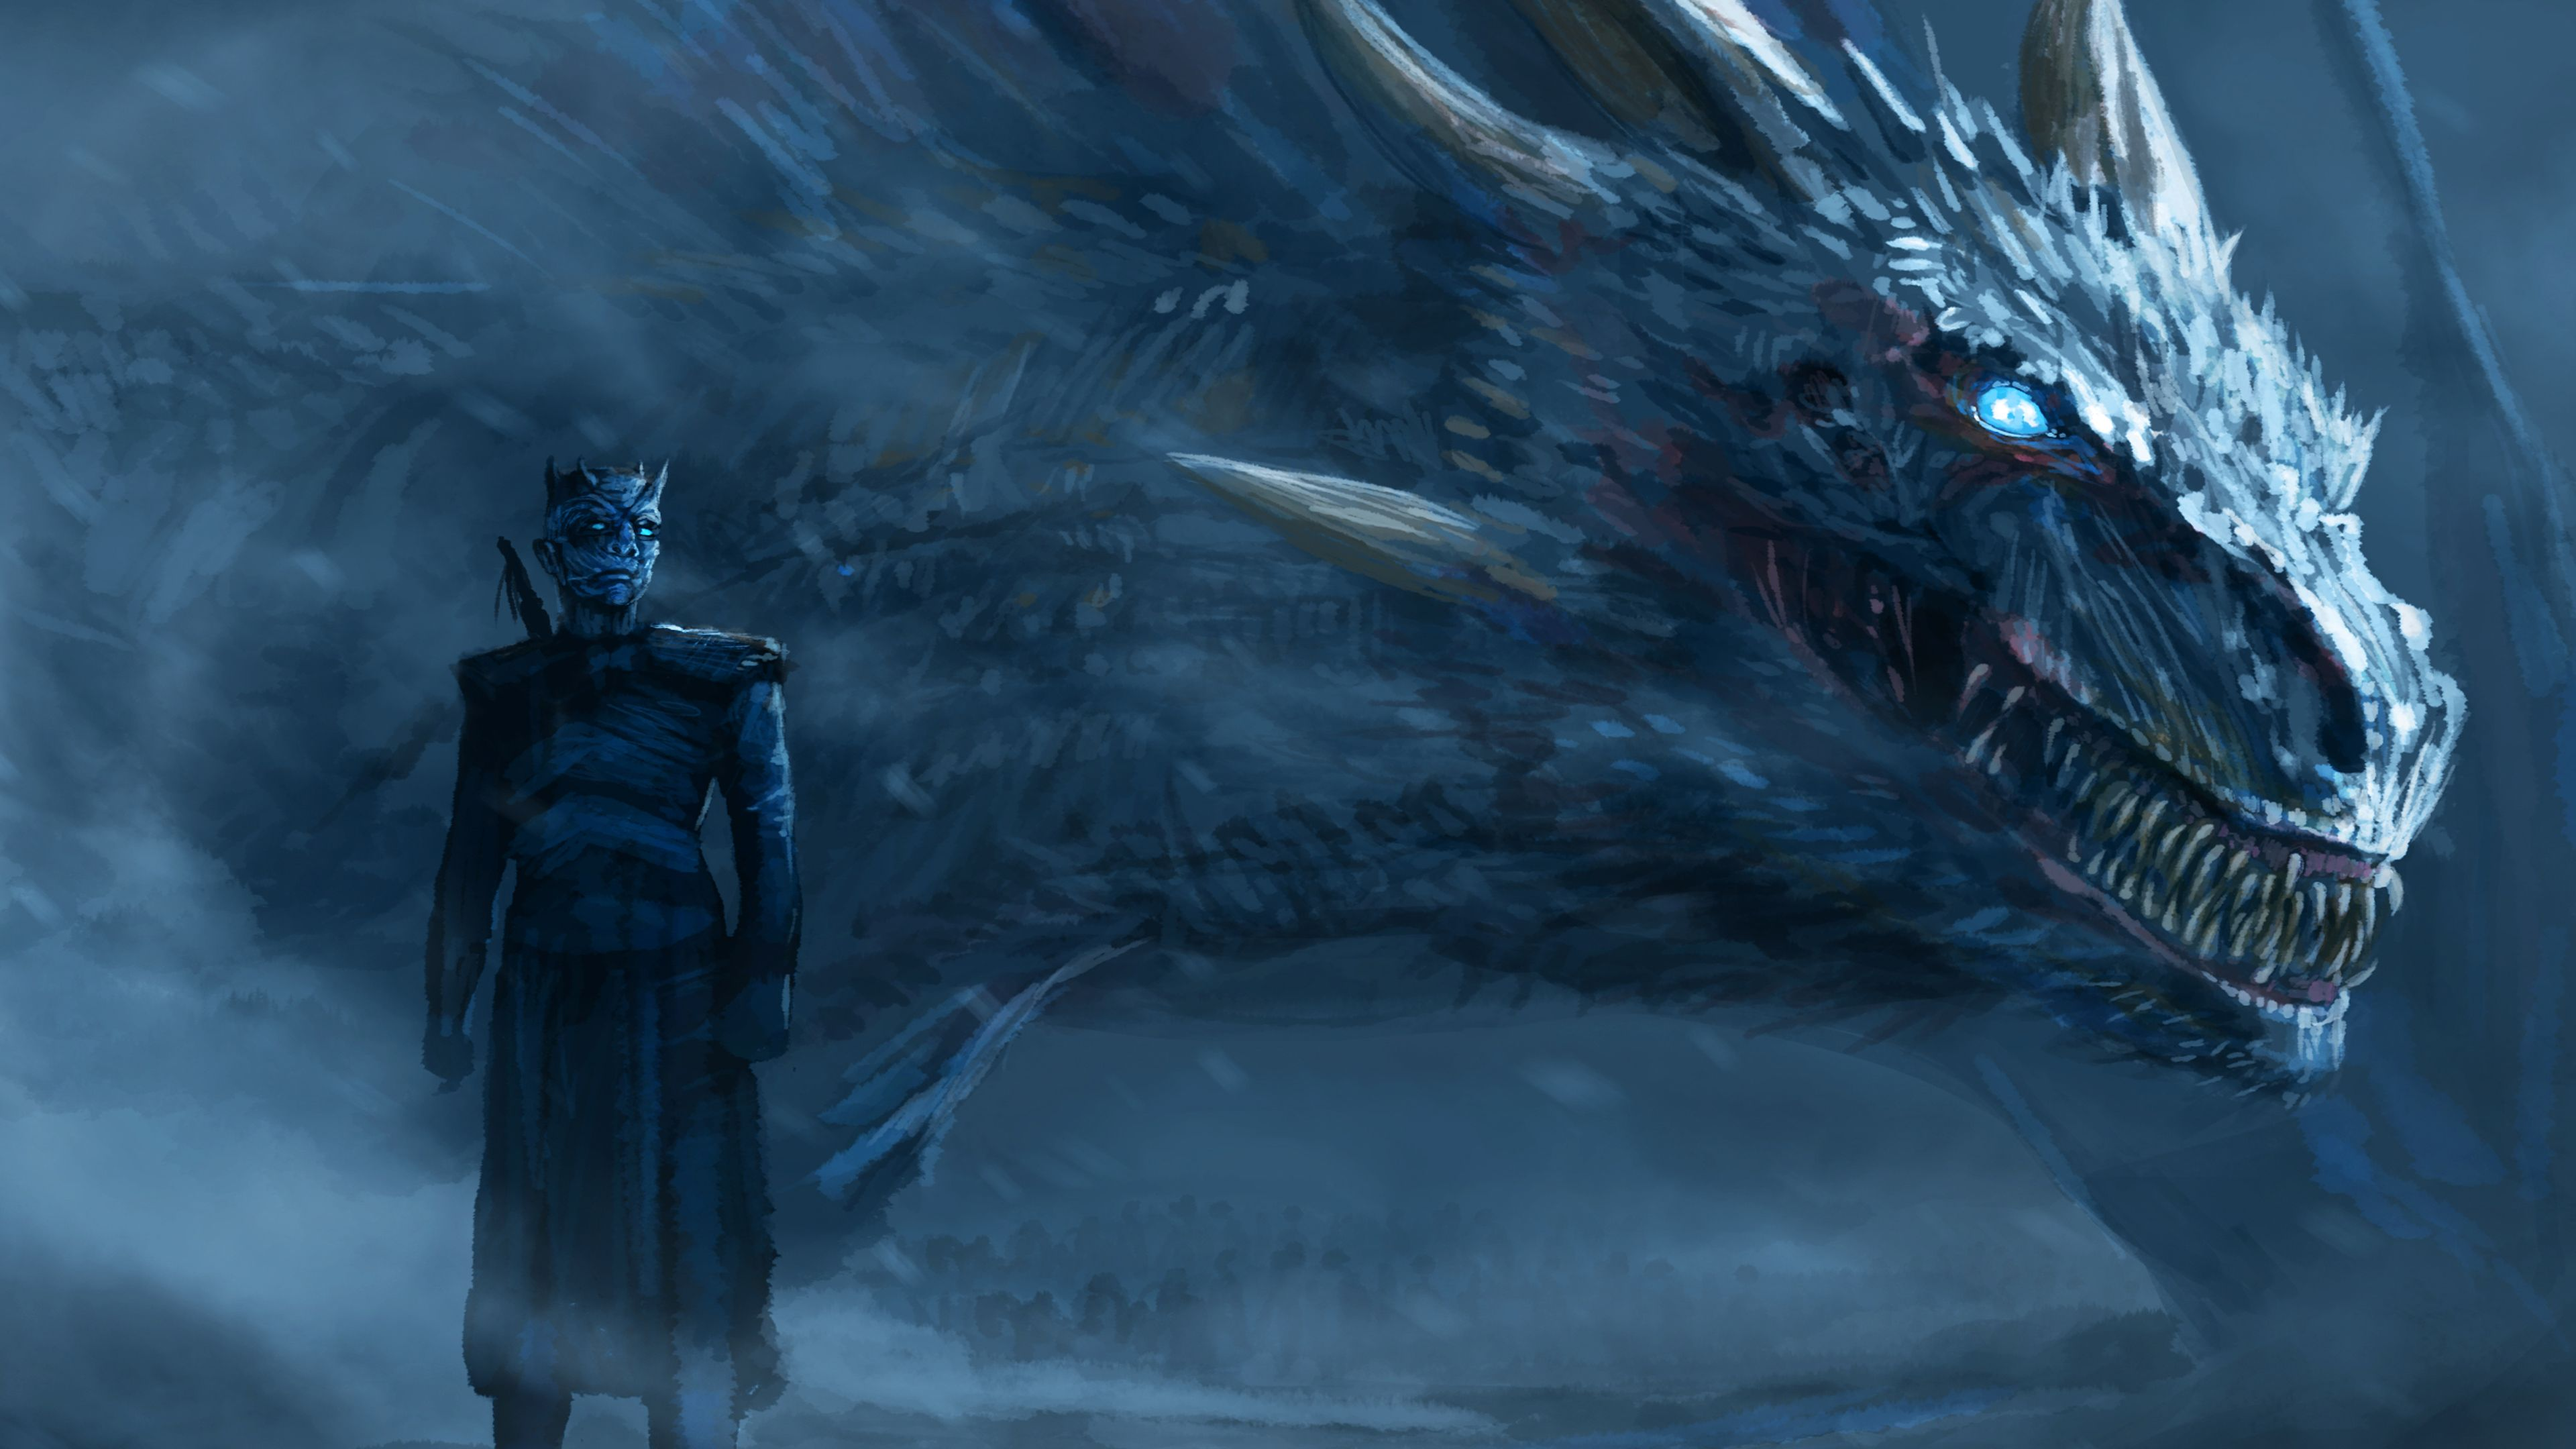 game of thrones laptop wallpaper, free game of thrones wallpaper